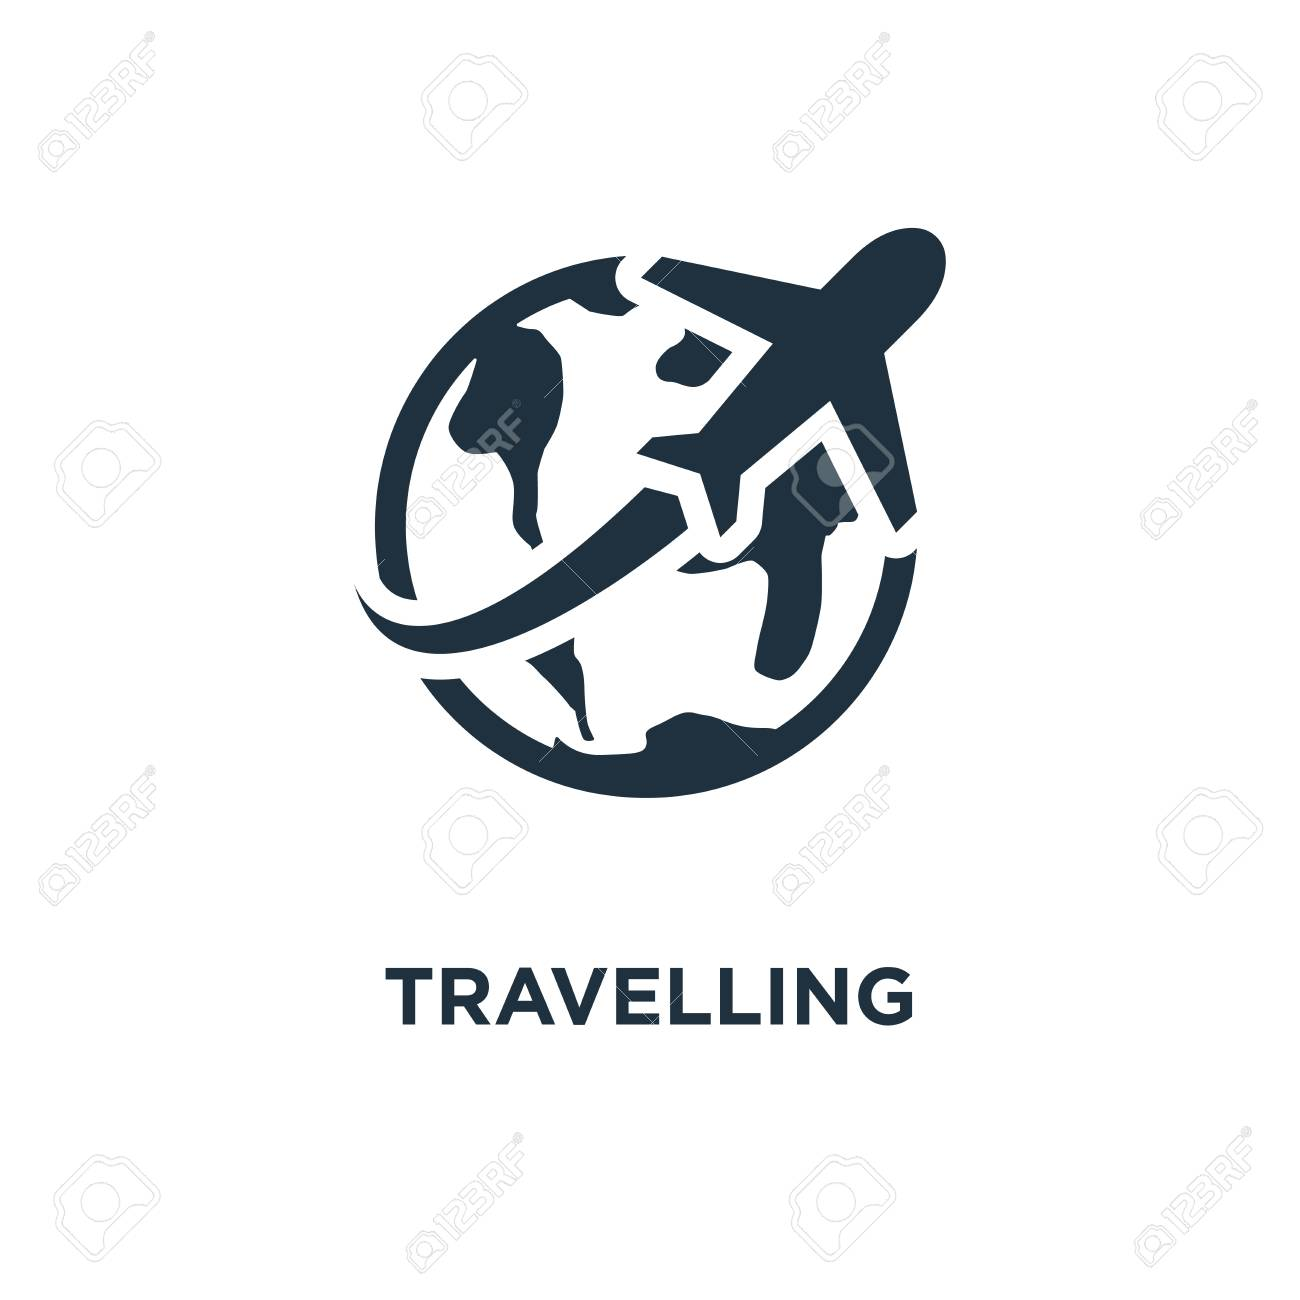 Travelling Icon. Black Filled Vector Illustration. Travelling.. Royalty  Free Cliparts, Vectors, And Stock Illustration. Image 112277034.